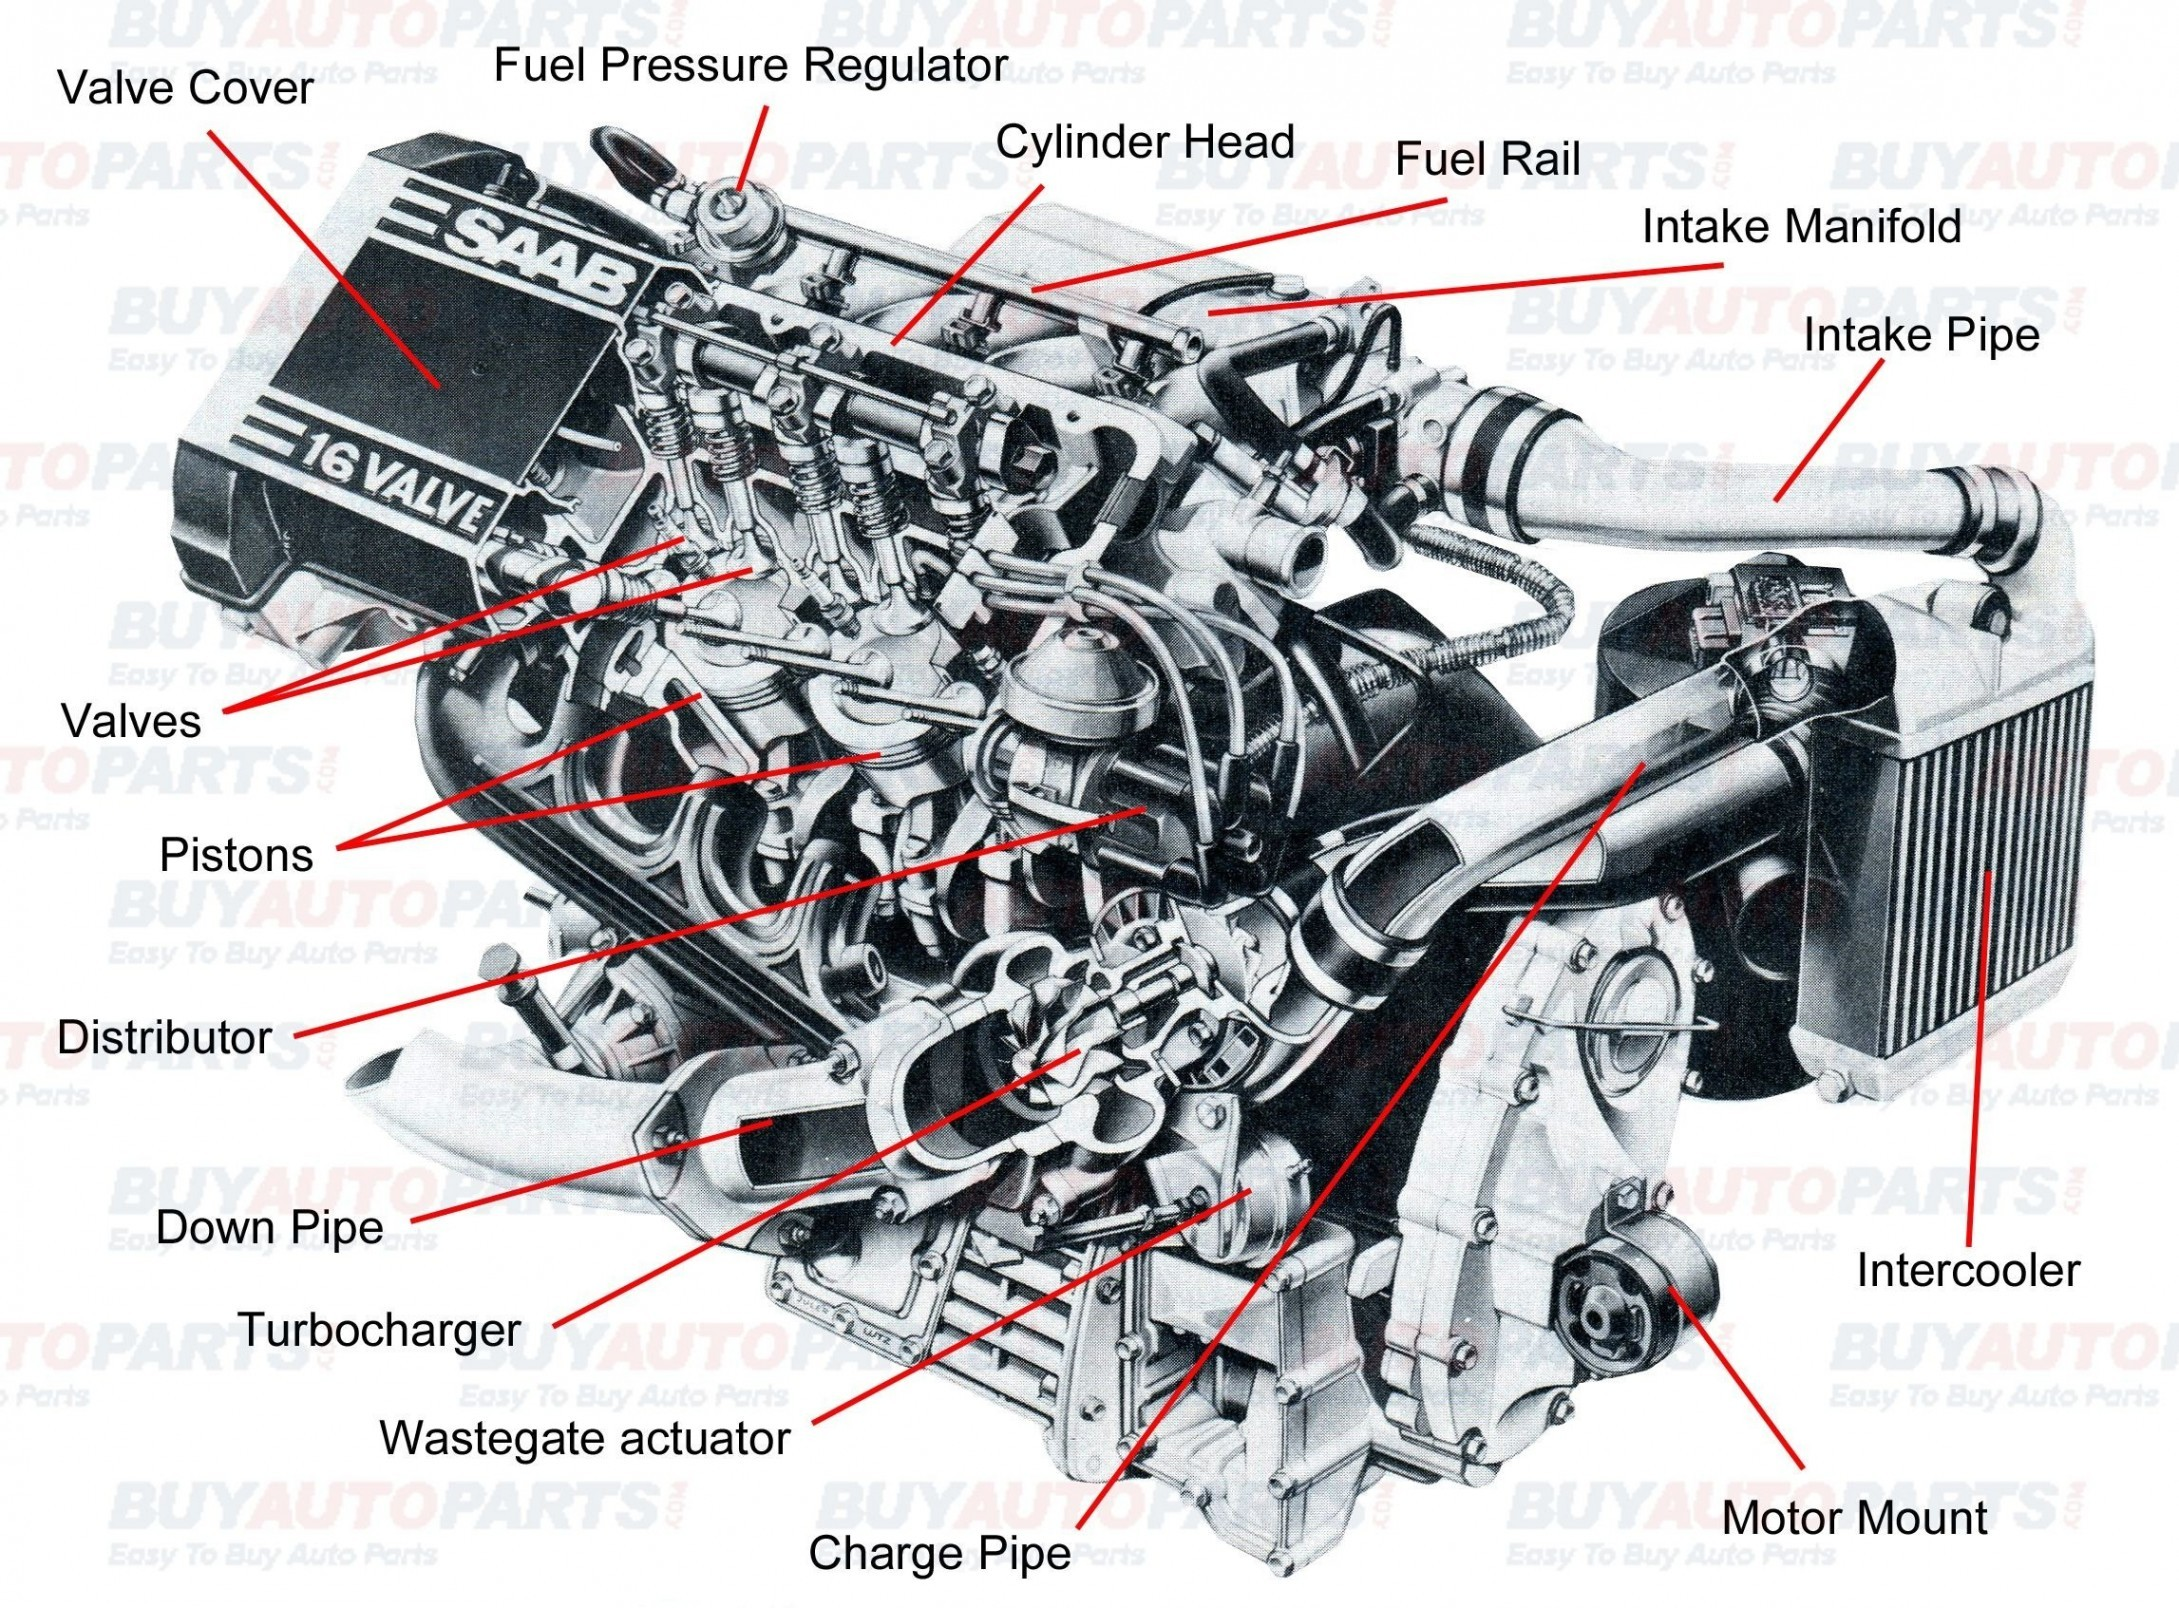 Car Engine Diagram – Car Diagram Unique Car Parts And Diagrams